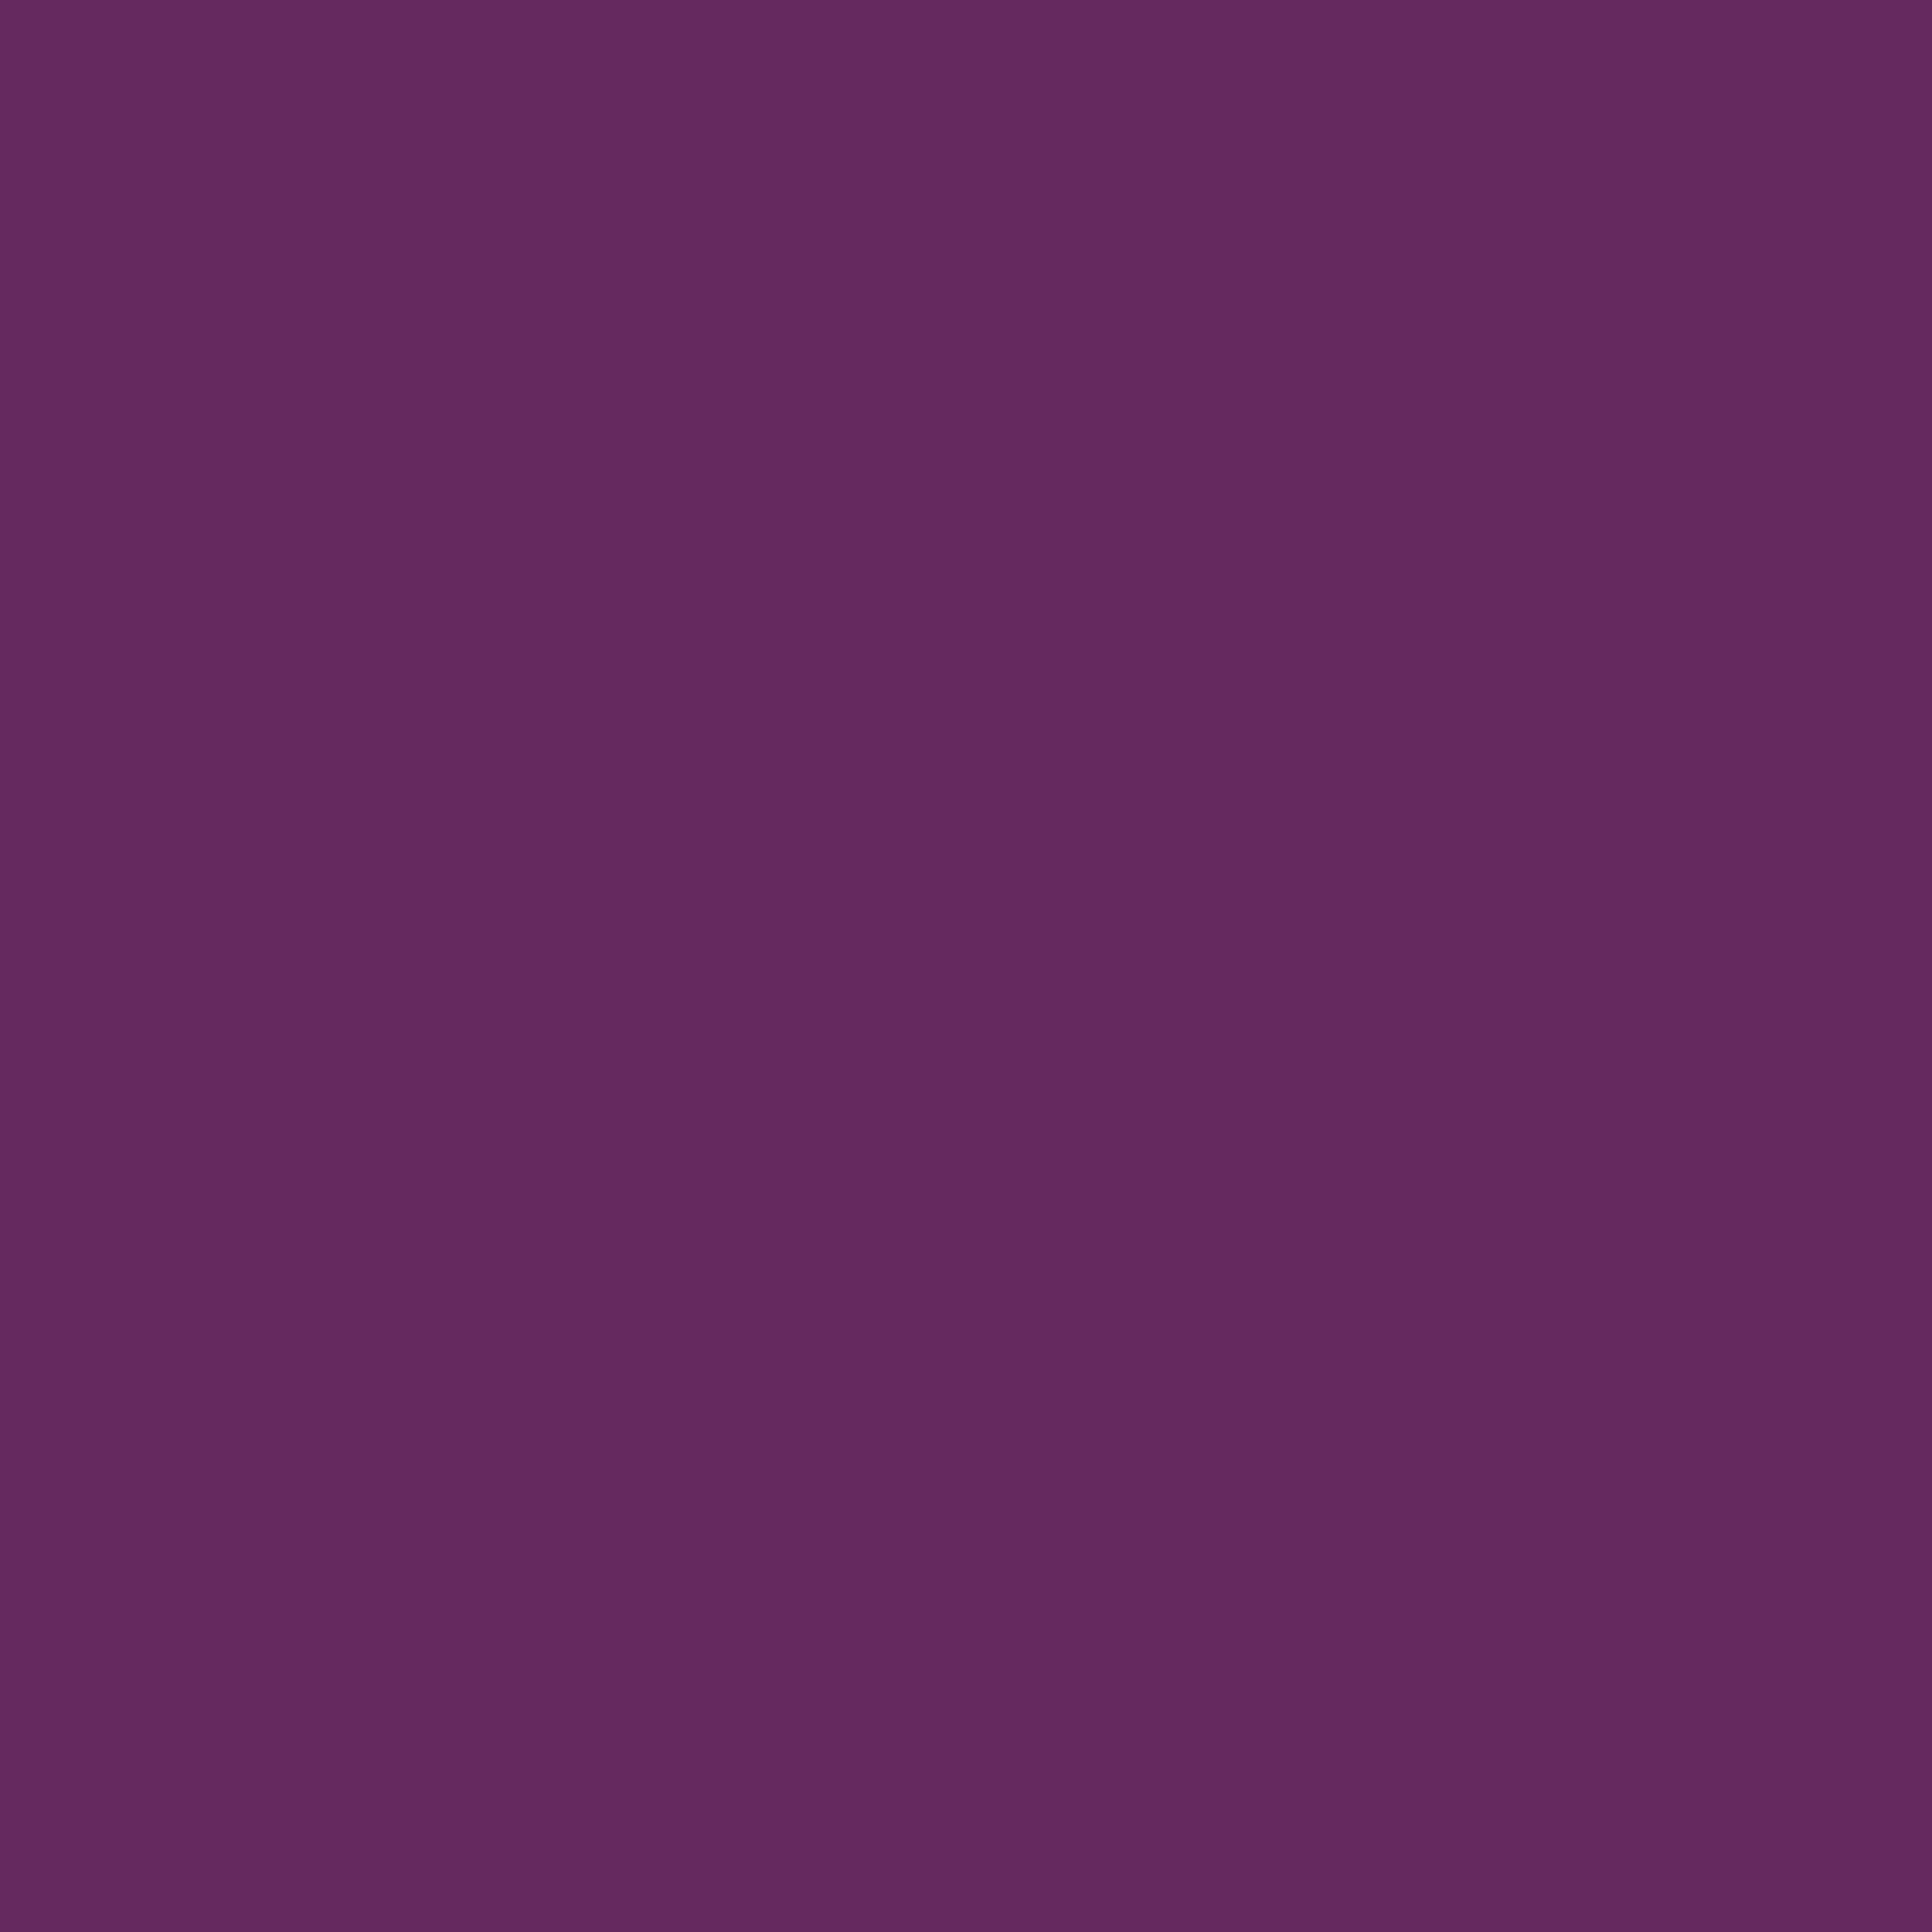 2732x2732 Palatinate Purple Solid Color Background